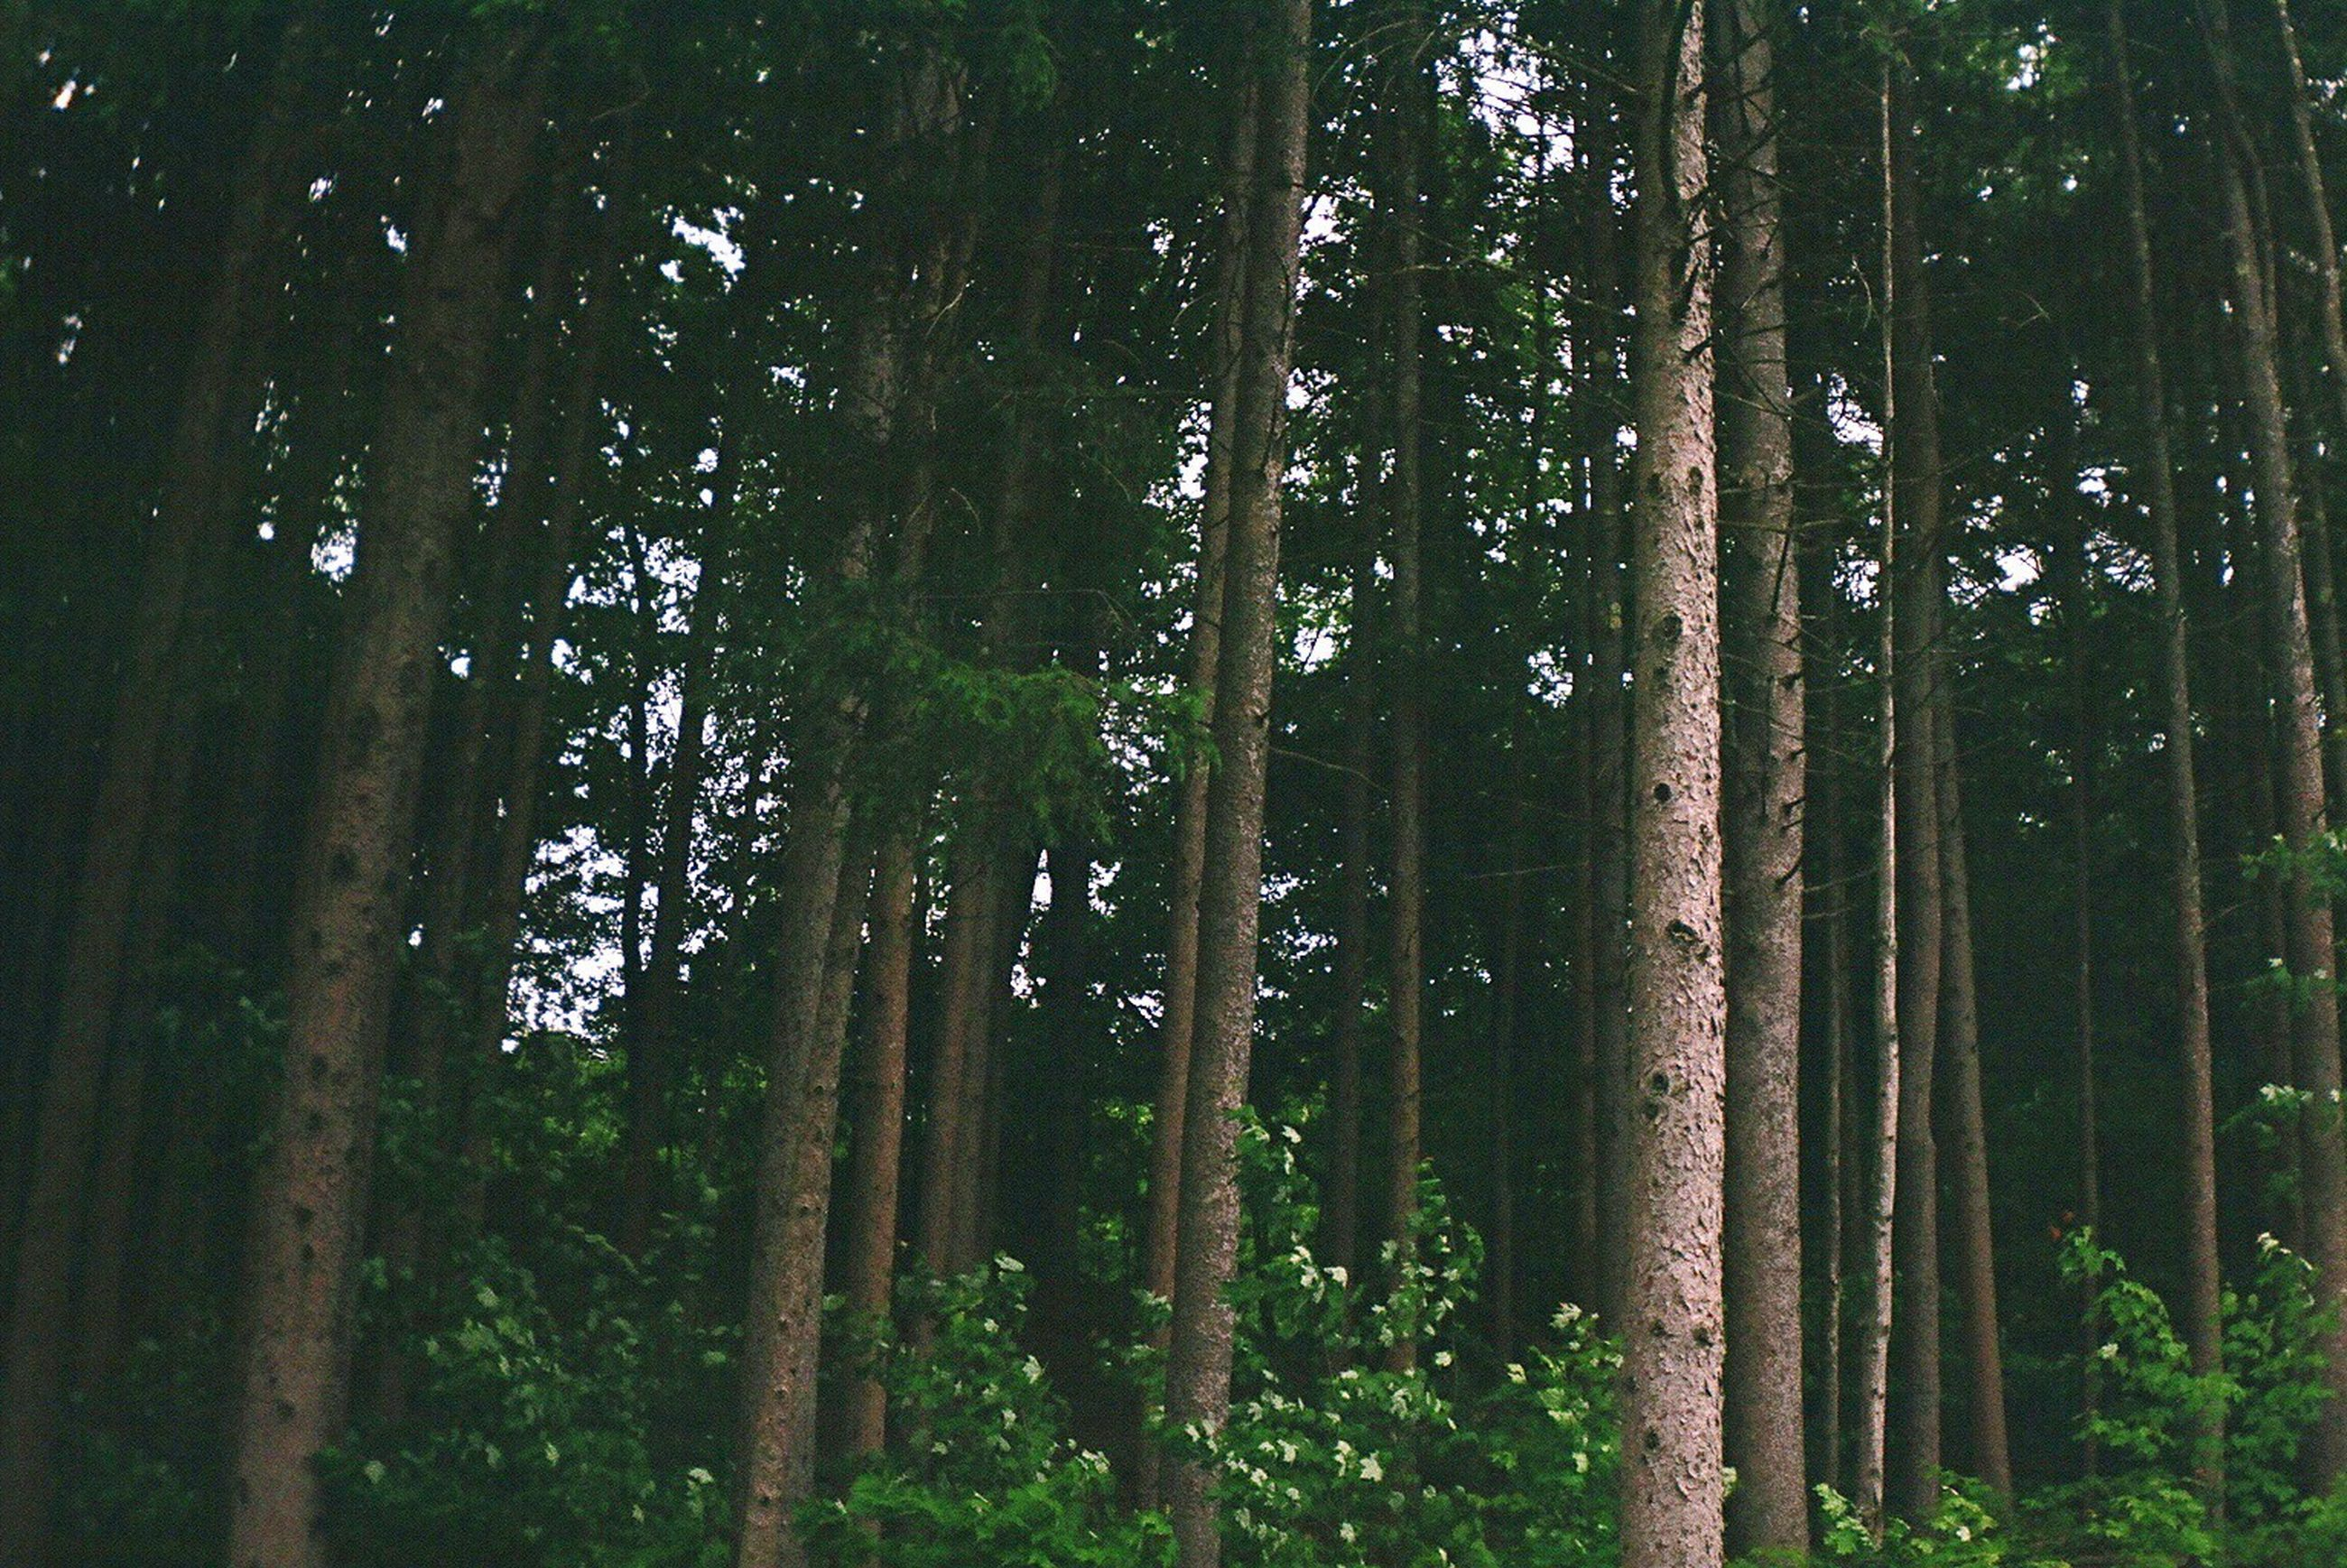 tree, nature, beauty in nature, growth, tranquility, forest, no people, tree trunk, low angle view, outdoors, scenics, sky, day, bamboo grove